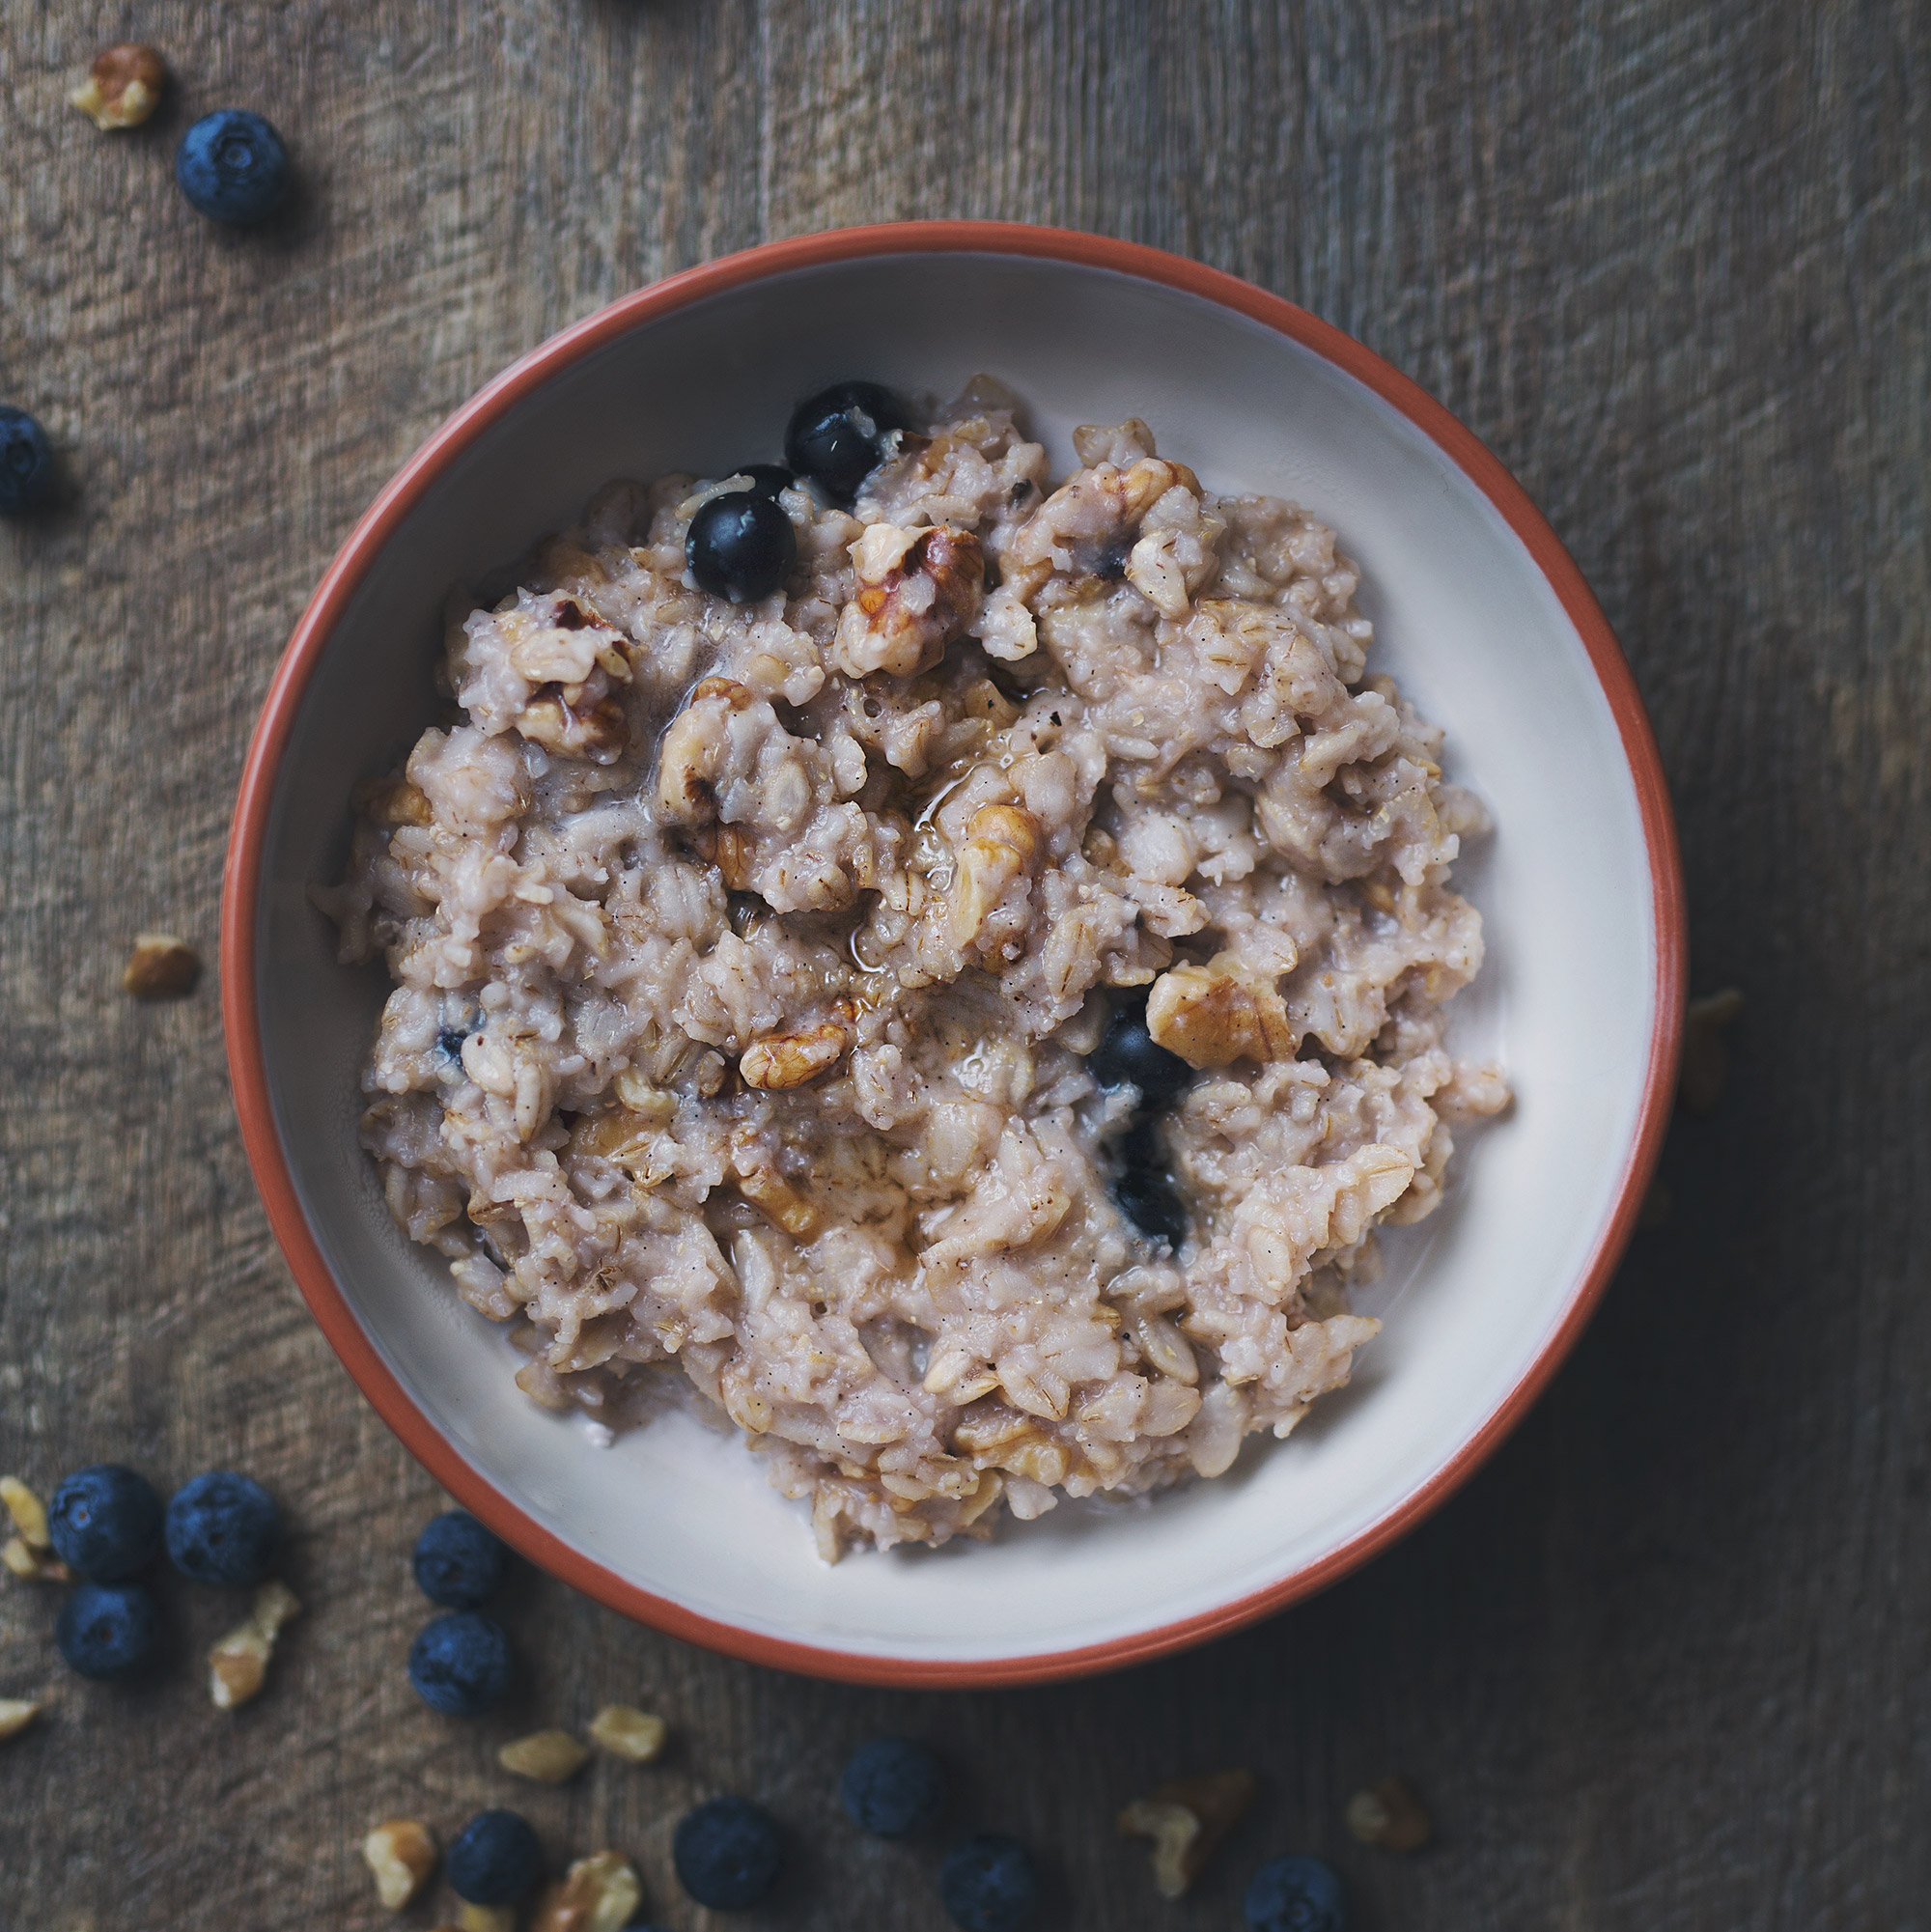 Warm Walnut and Blueberry Barley Porridge